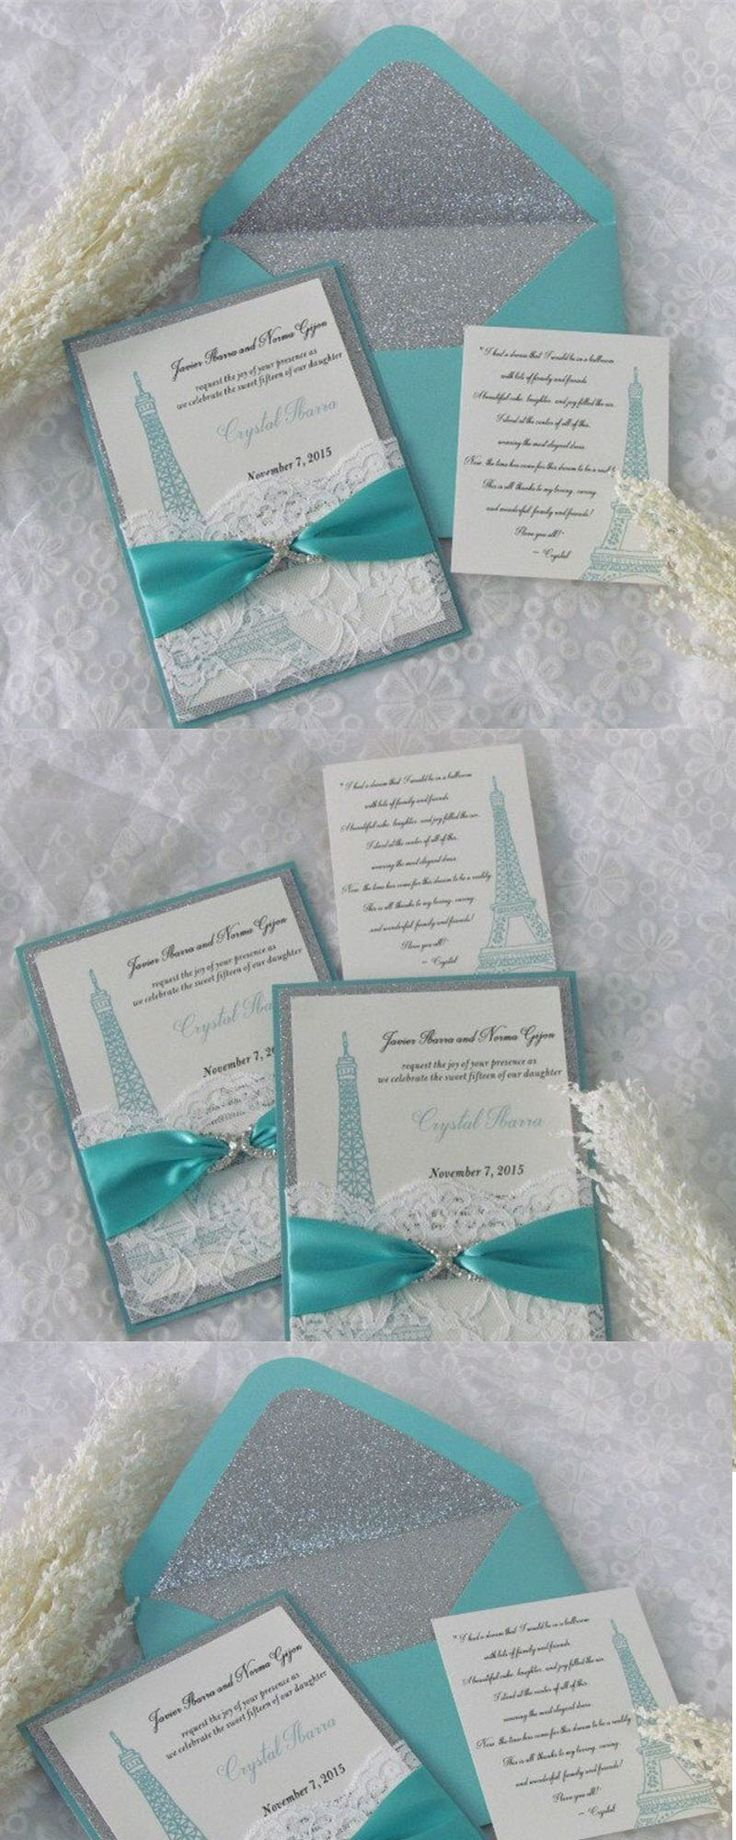 print yourself wedding invitations kit%0A Tiffany Blue Glitter Invitations  Sliver Glitter Invitations